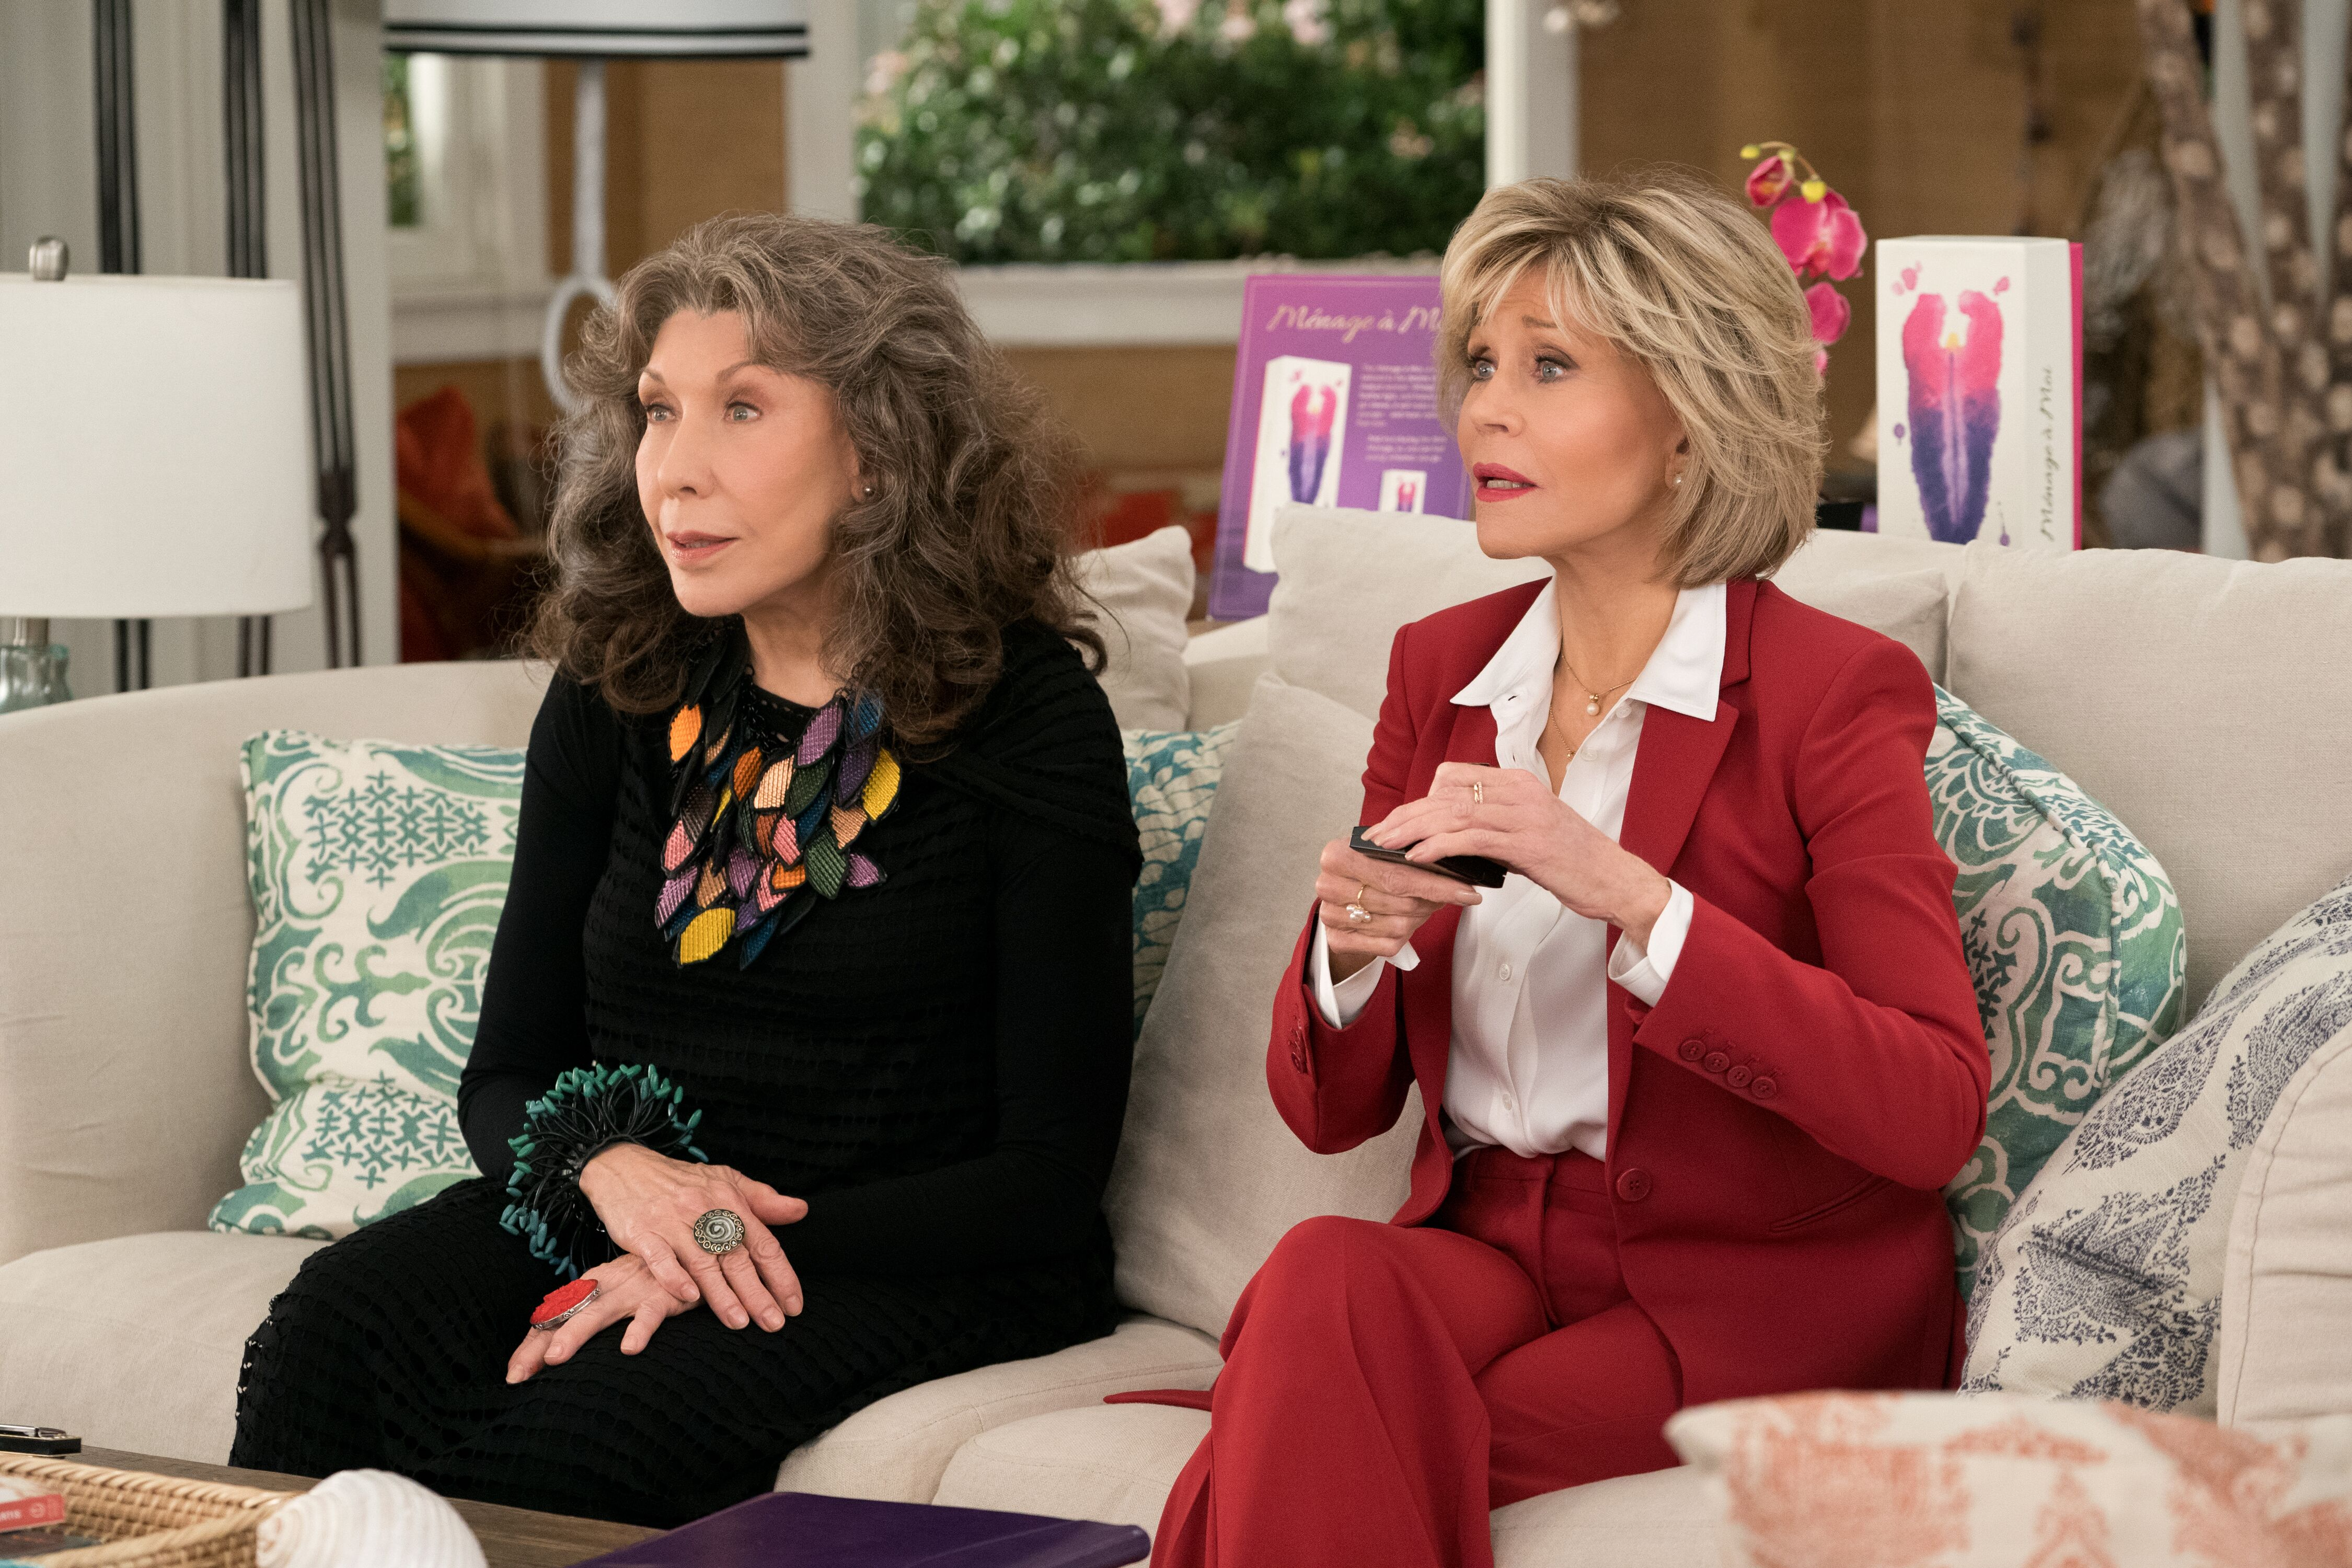 Grace and Frankie season 6: Everything we know so far